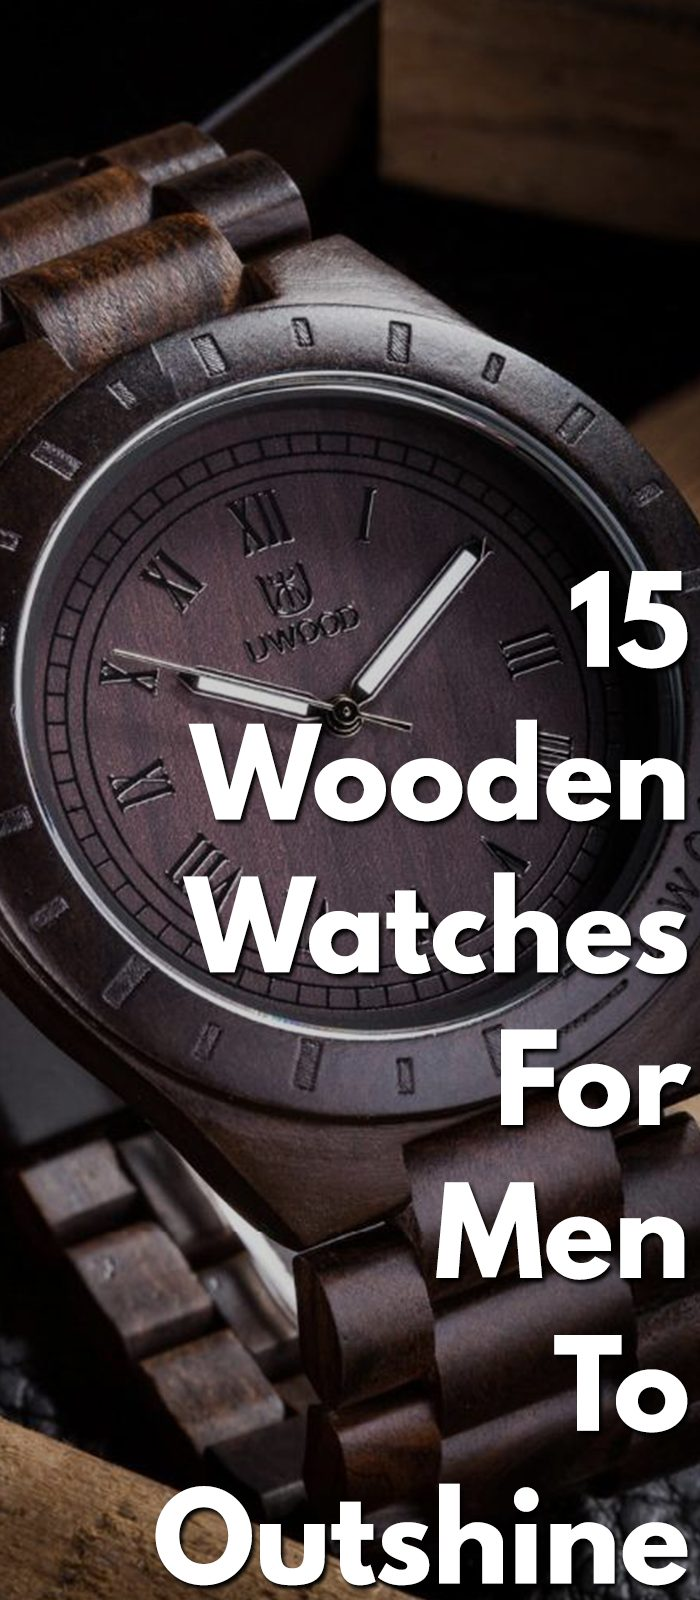 15 Wooden Watches For Men To Outshine!